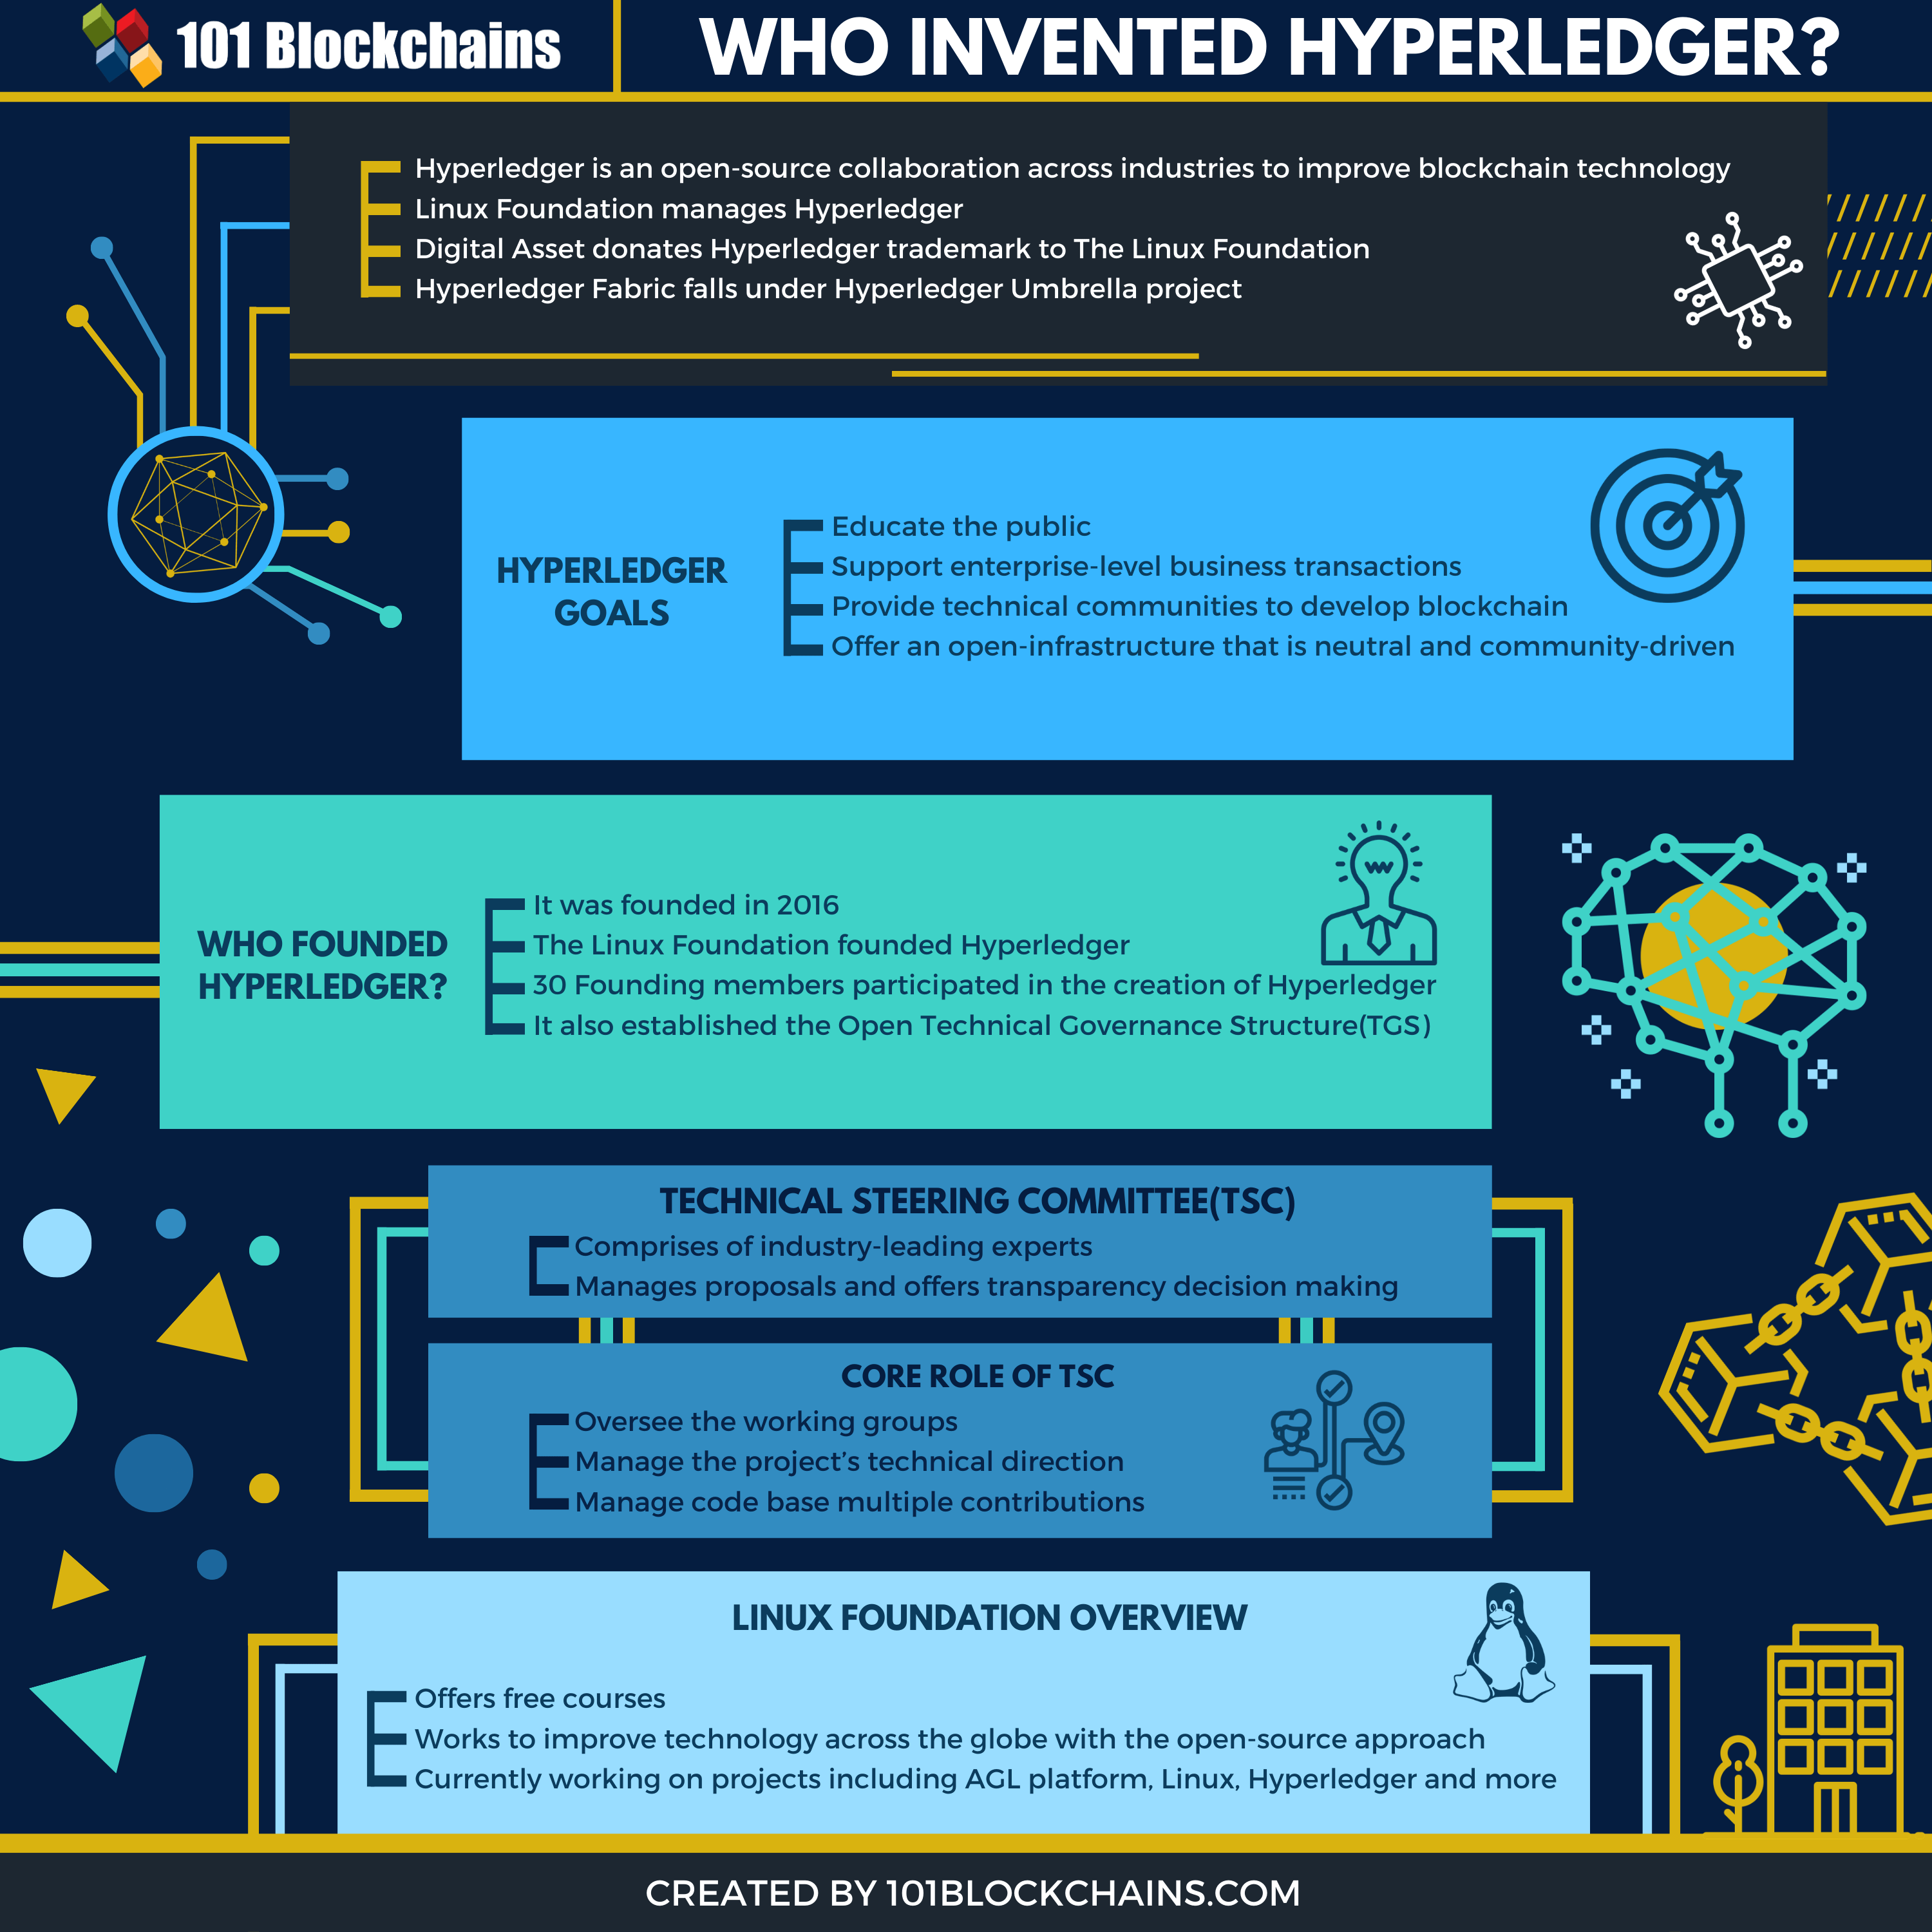 WHO INVENTED HYPERLEDGER